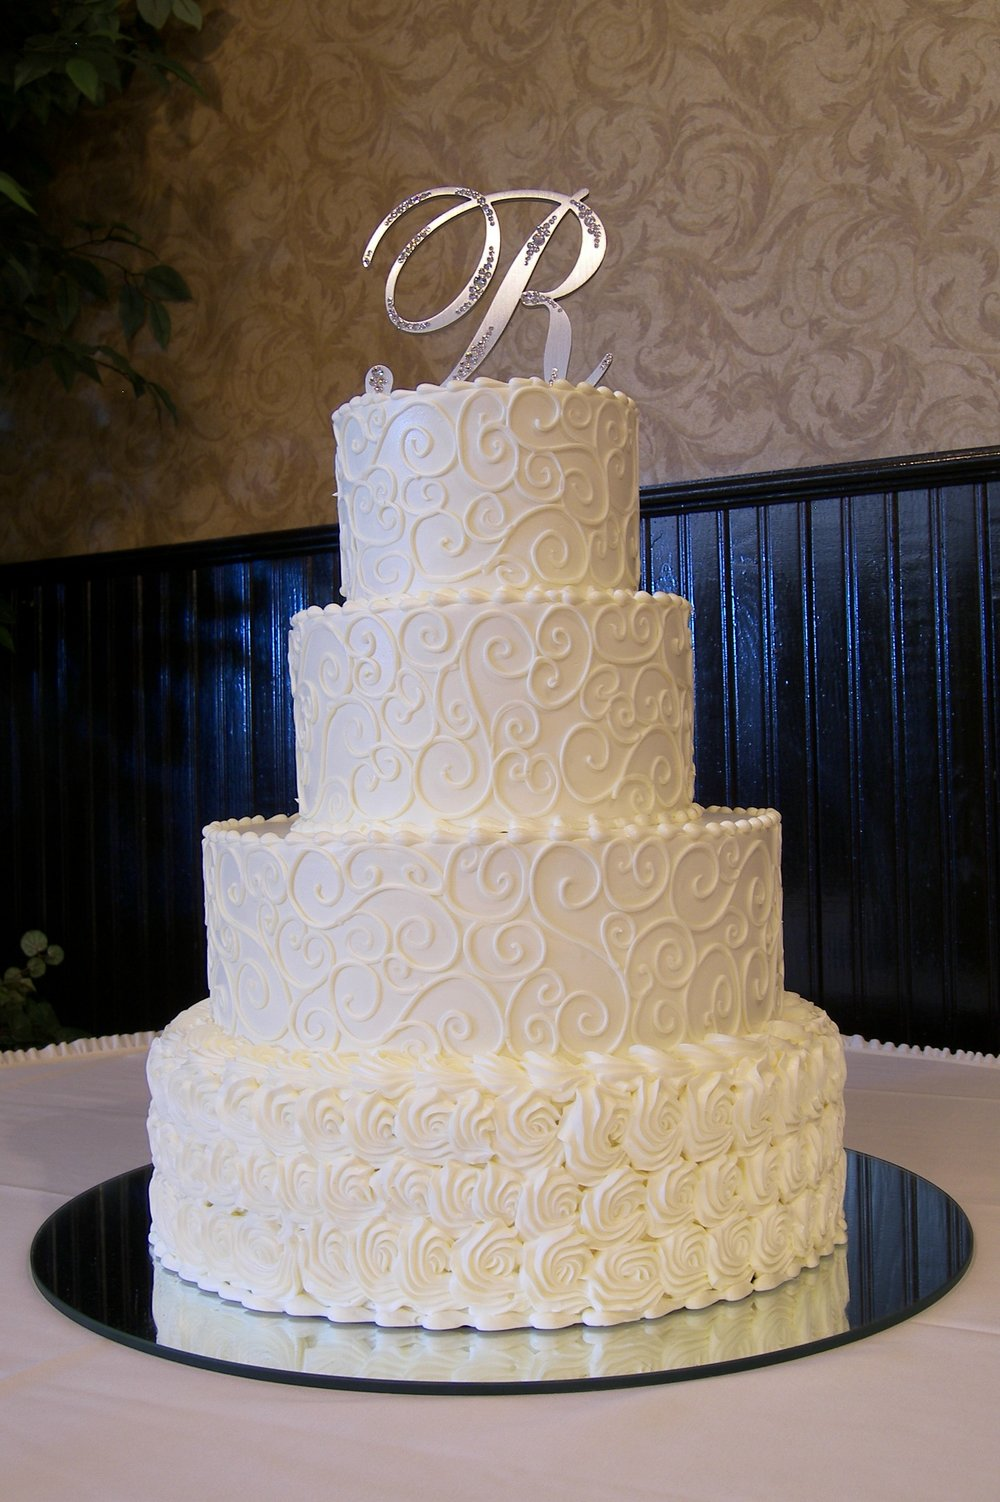 Wedding cake art design center buttercream our delicious buttercream cakes feature our decadent frosting between the cake layers and elegantly junglespirit